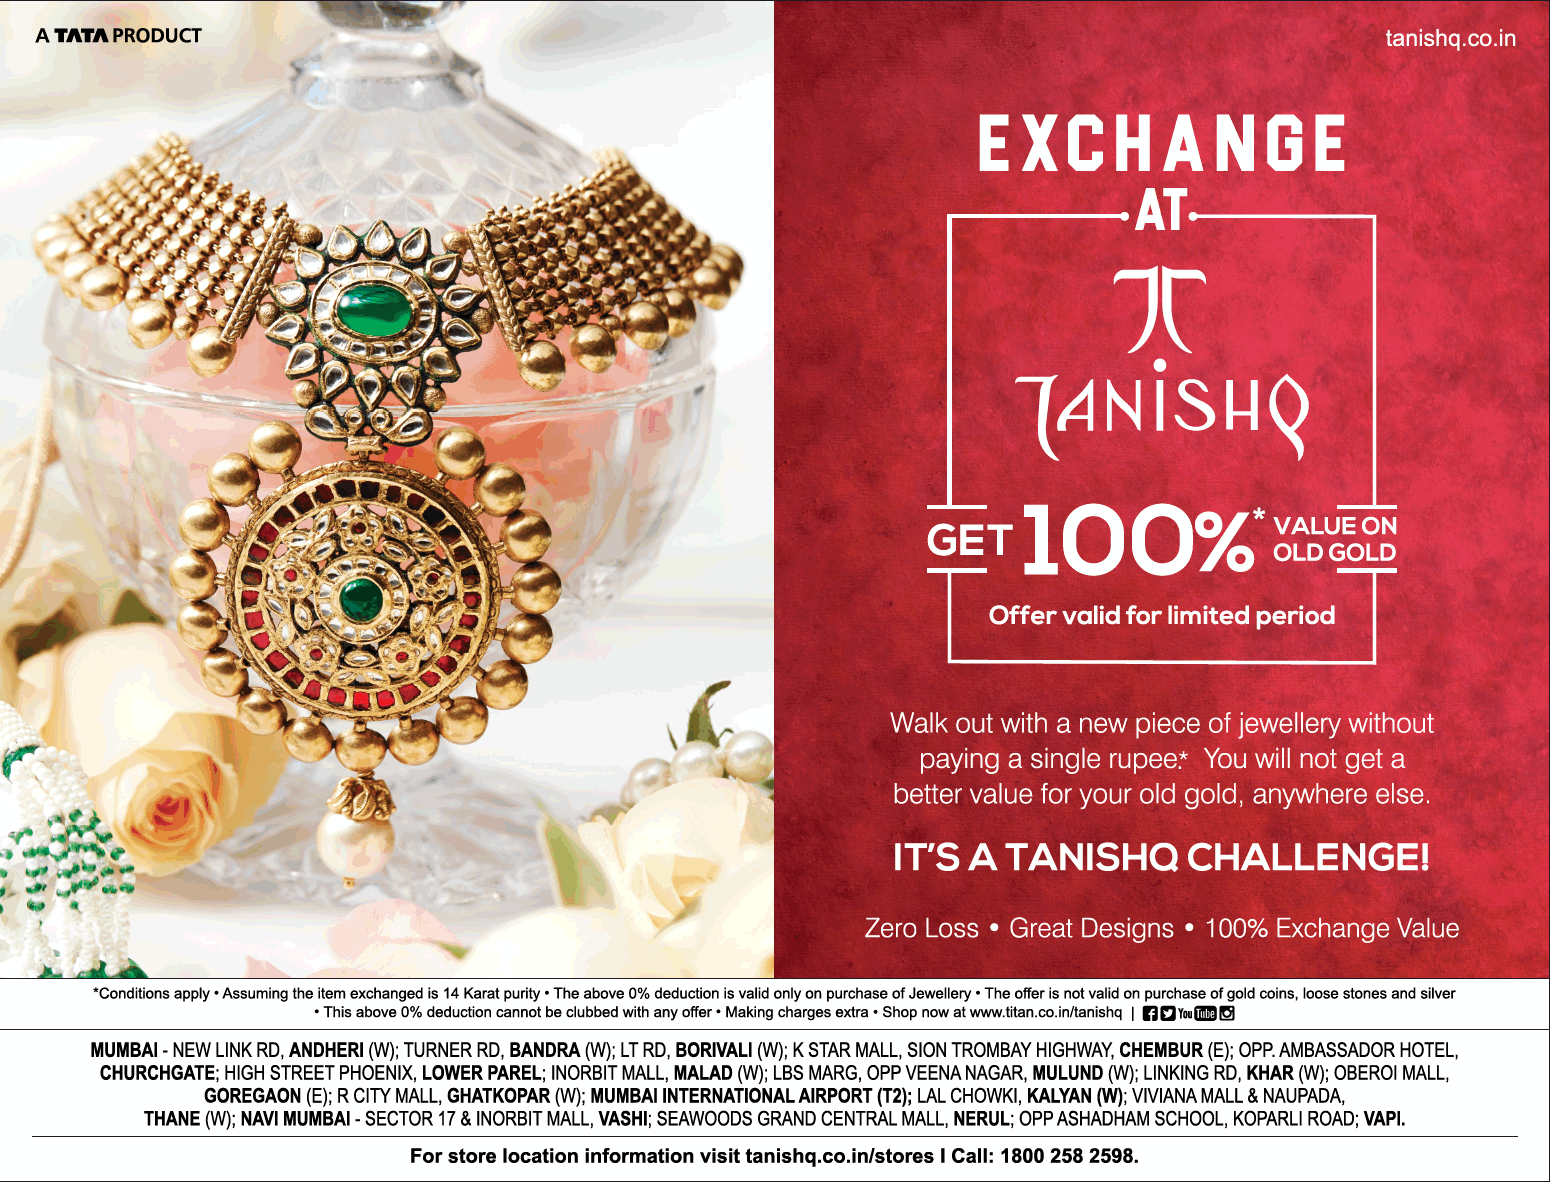 Tanishq Exchange At Get 100 Value On Old Gold Ad